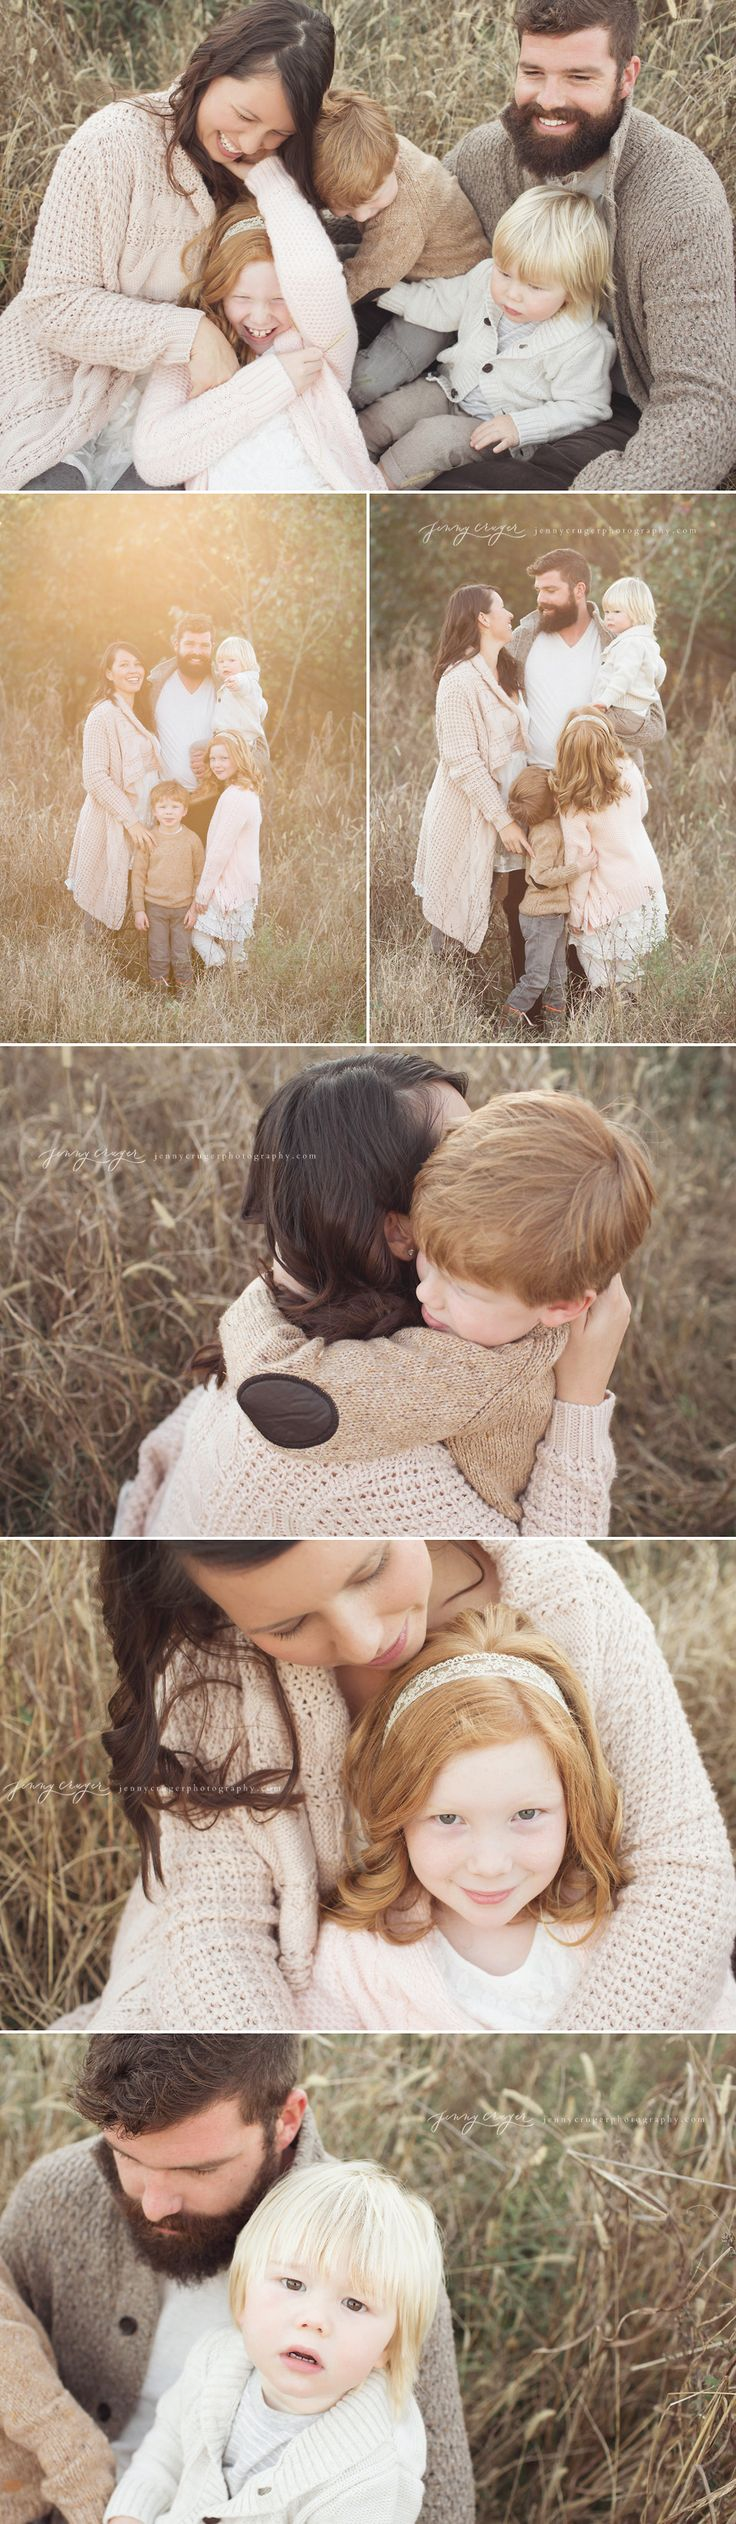 What to Wear | Family Session | Neutrals and cozy textures (Images by Jenny Cruger Photography)